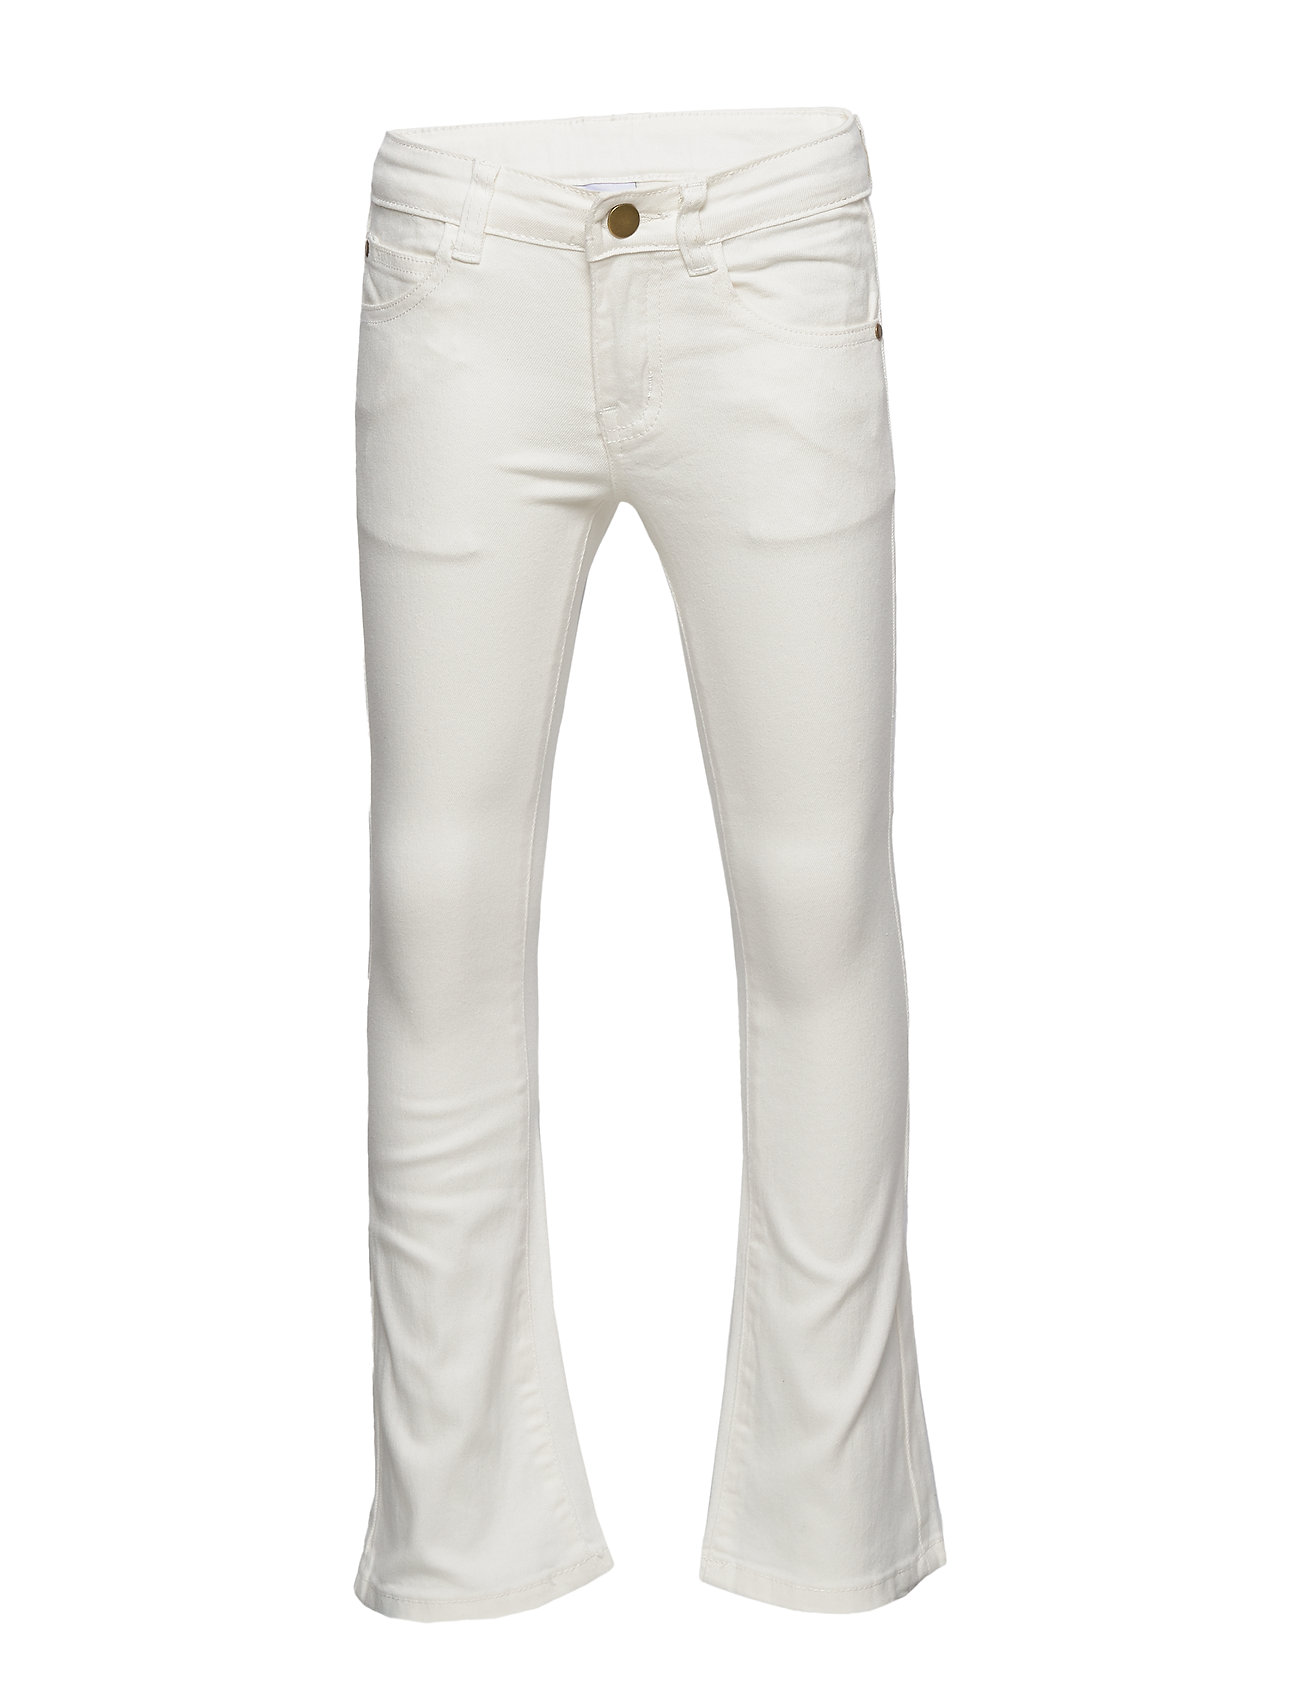 The New THE NEW FLARED JEANS - CLOUD DANCER